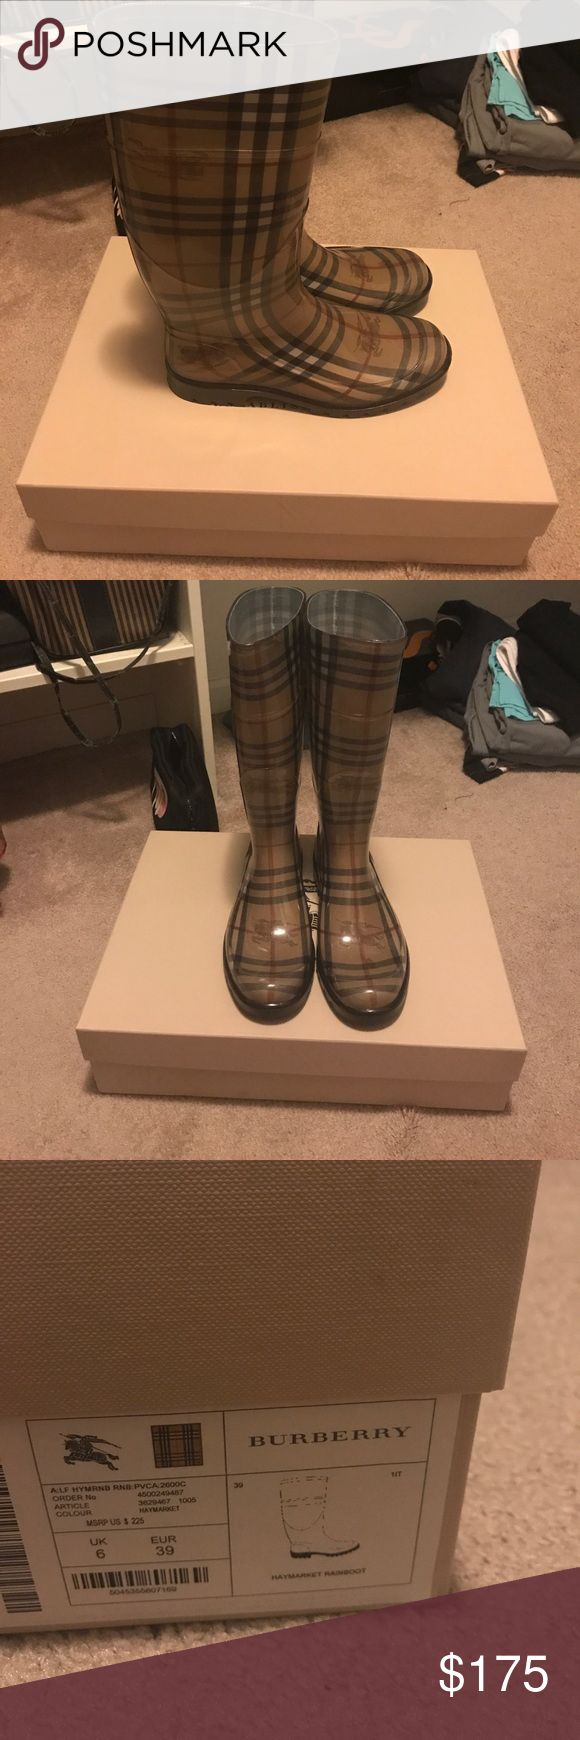 Burberry Haymarket Rainboot Size 39 These rain boots are perfect for the fall and winter. Classic Burberry print. The material is pvc. The rain boots are size 39. The boots were worn twice. They are in like new condition. Burberry Shoes Winter & Rain Boots